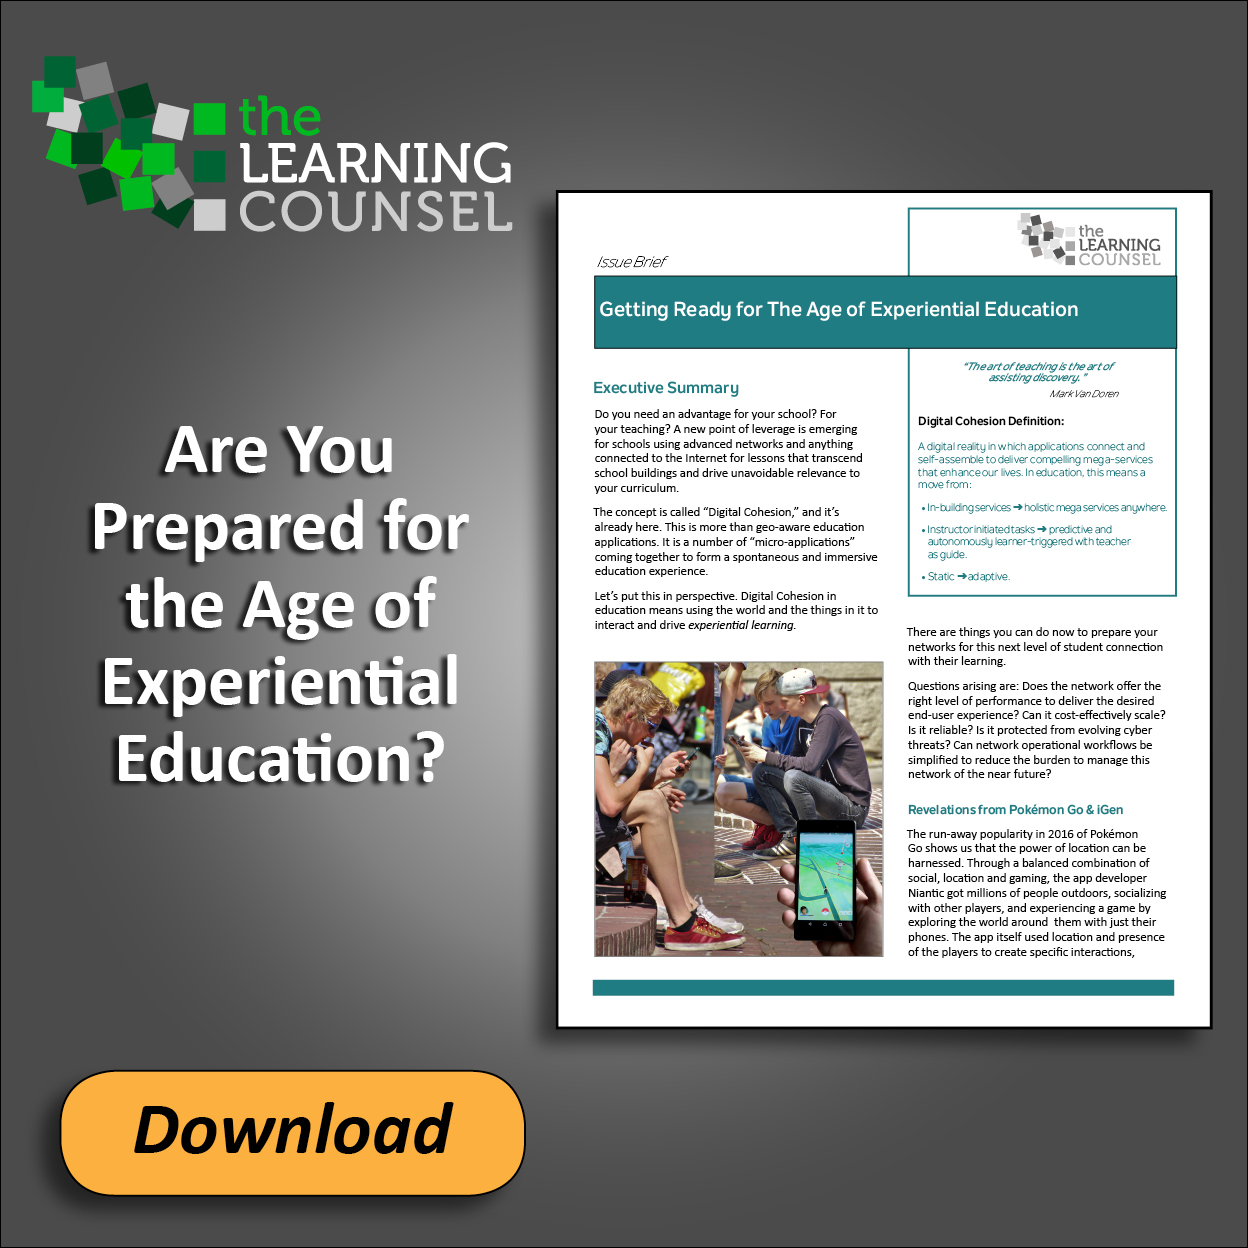 Learning Counsel Workbook | the Learning Counsel